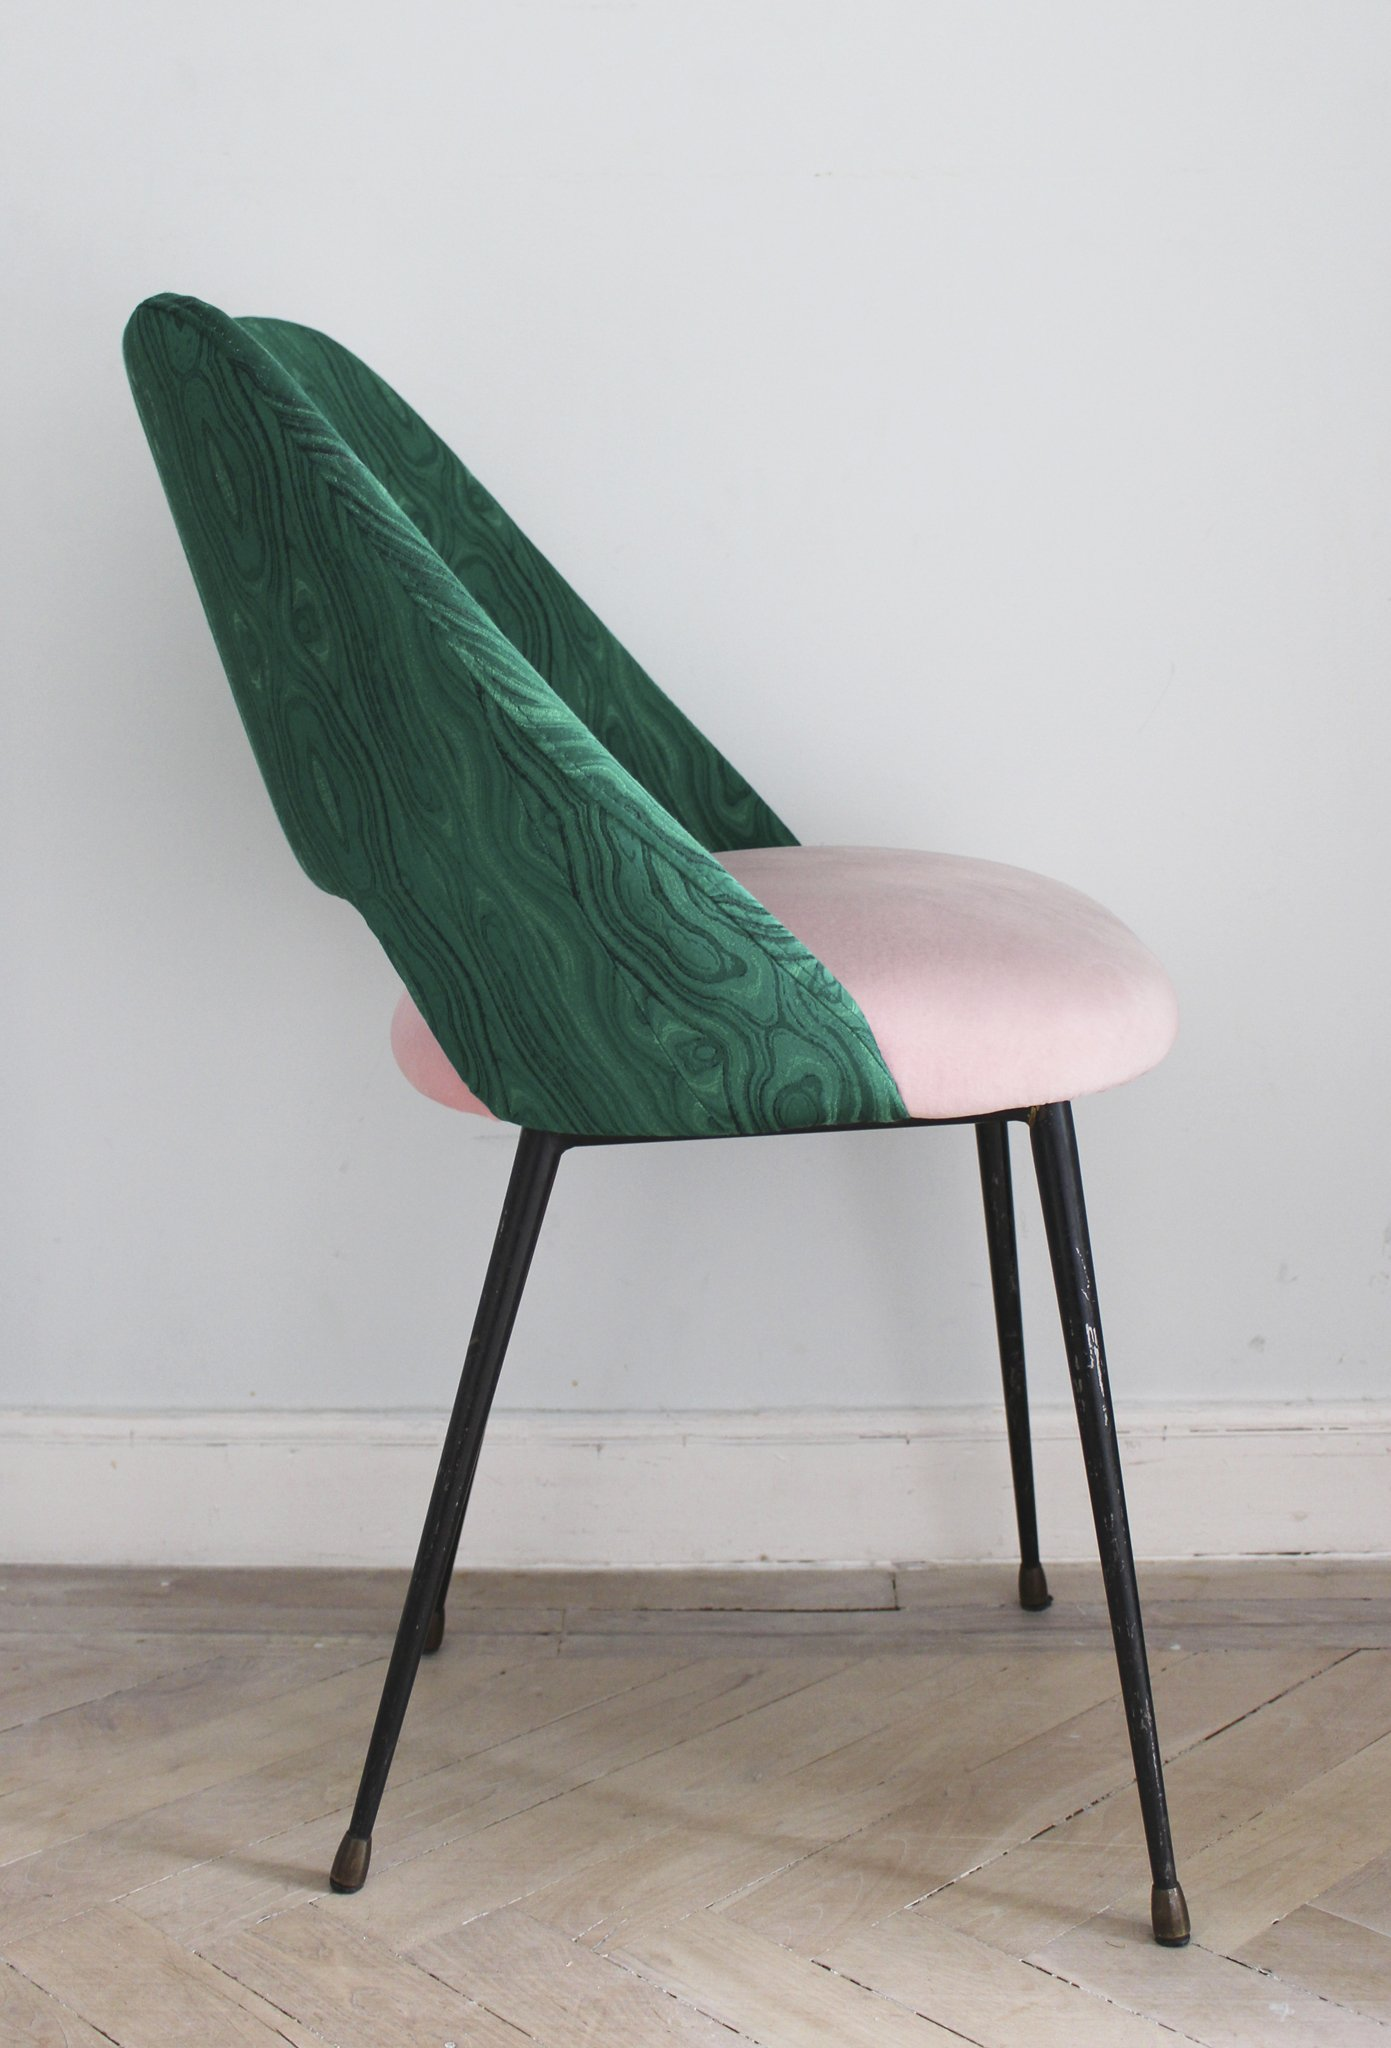 Patricia Bustos Studio - Malachite Chairs